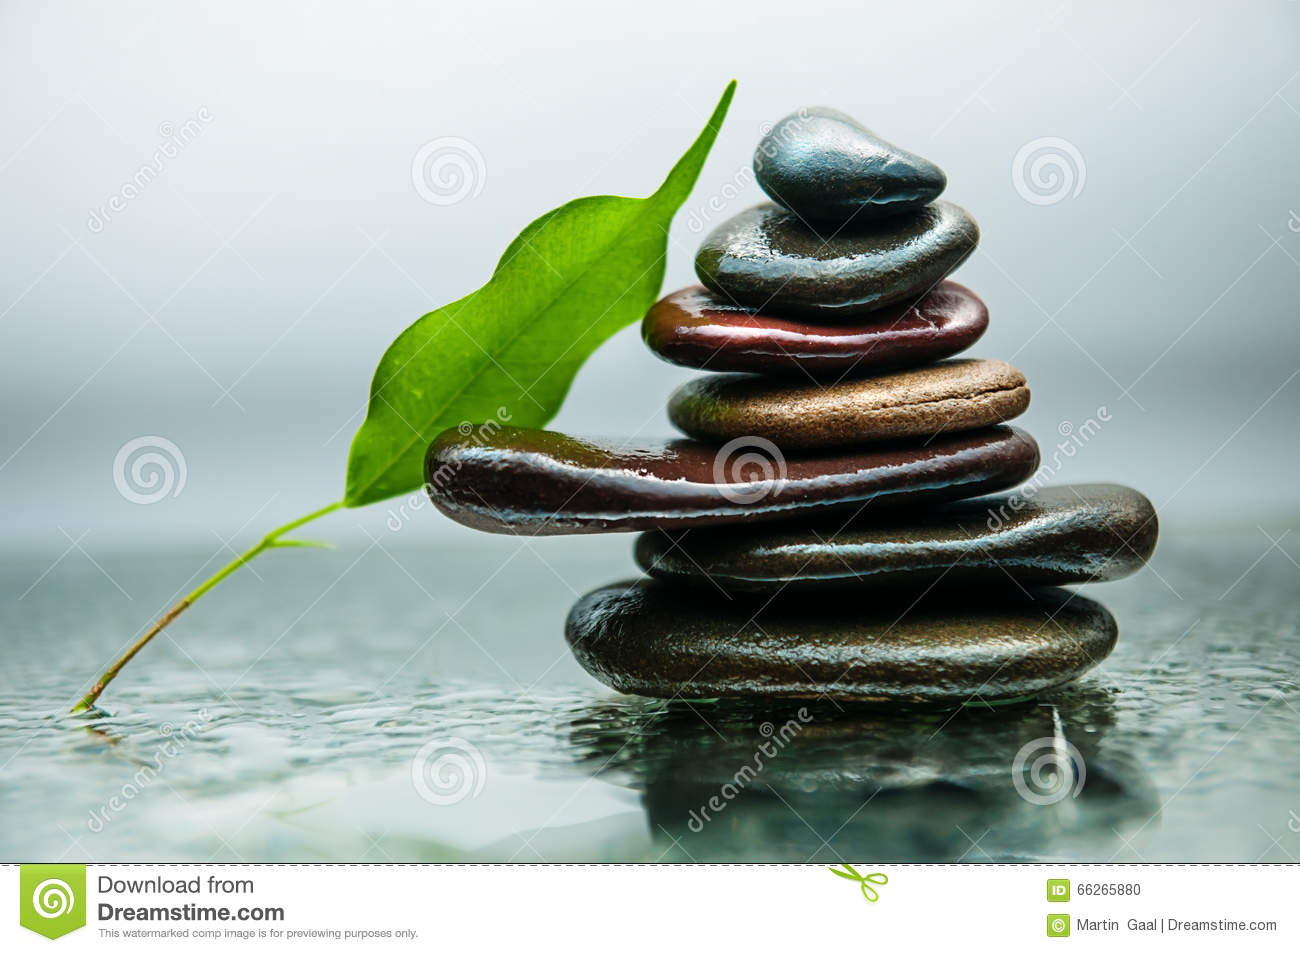 Dark or black rocks on water, background for spa, relax or wellness therapy